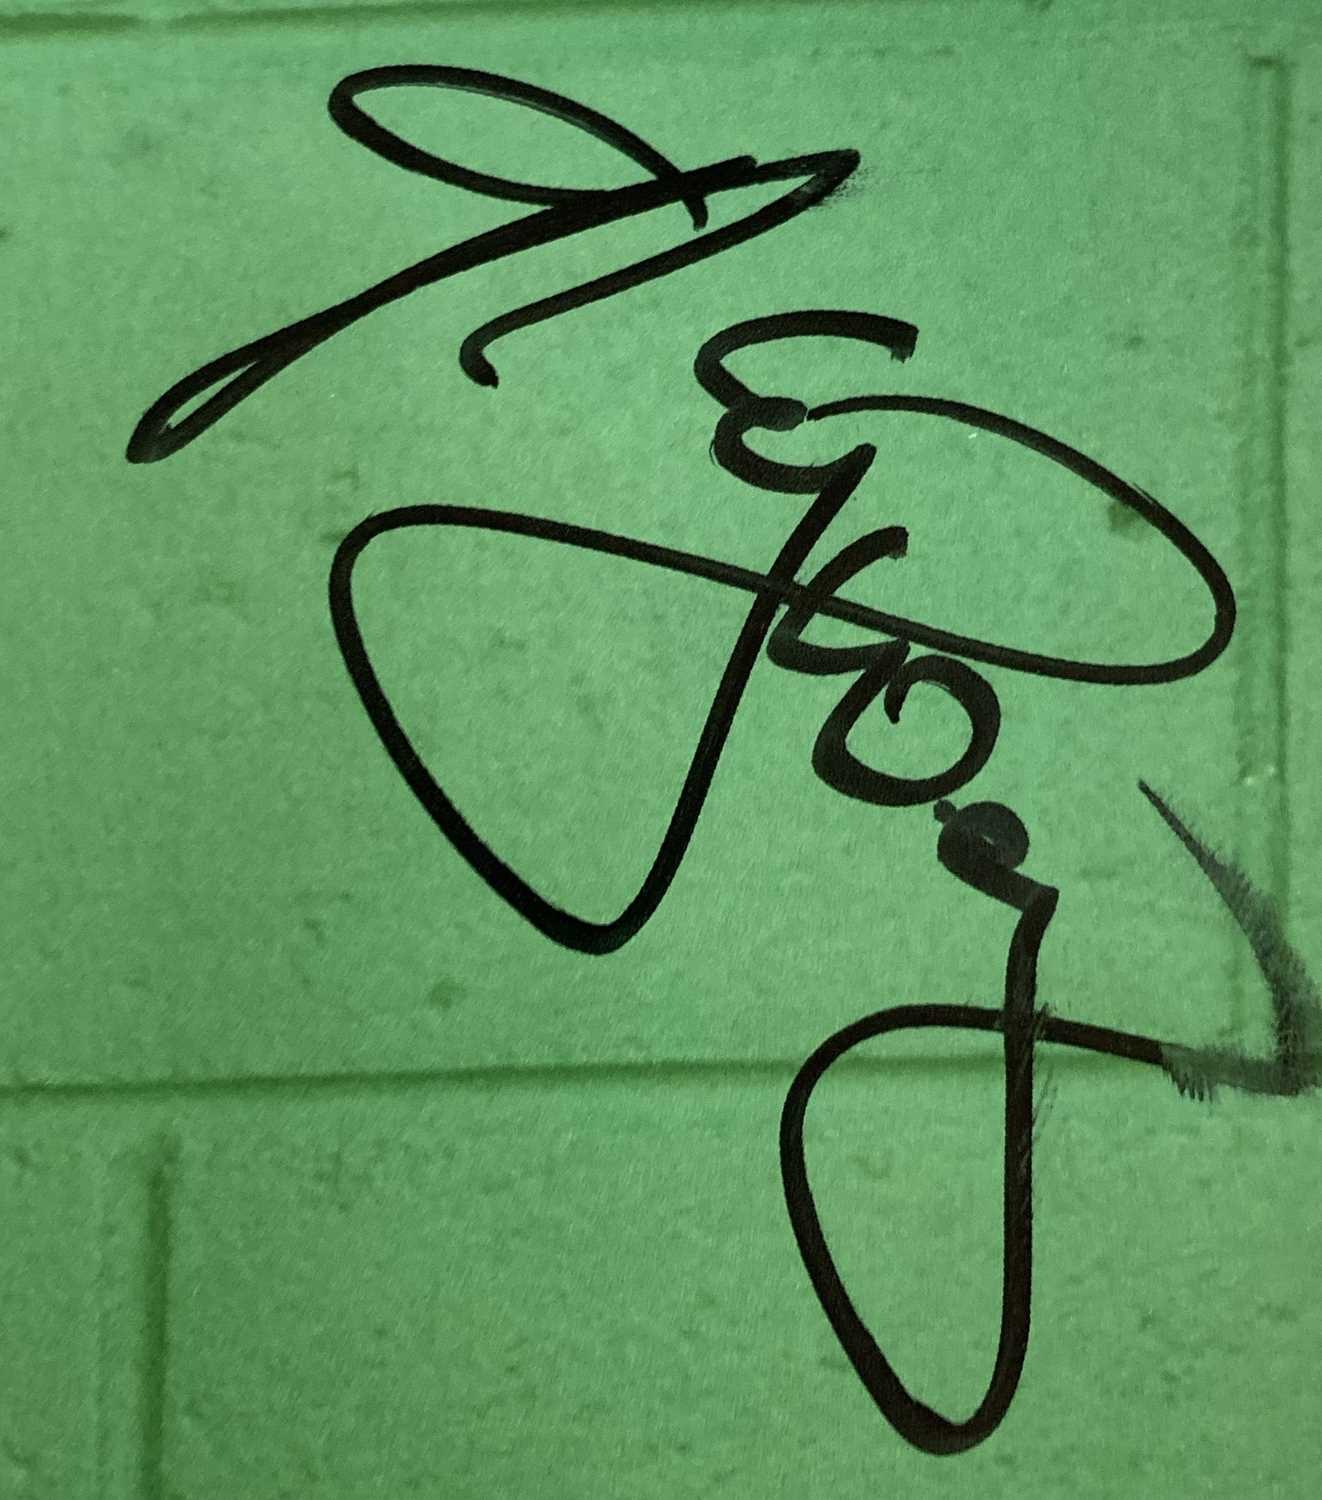 PUNK / NEW WAVE SIGNED ITEMS. - Image 4 of 9